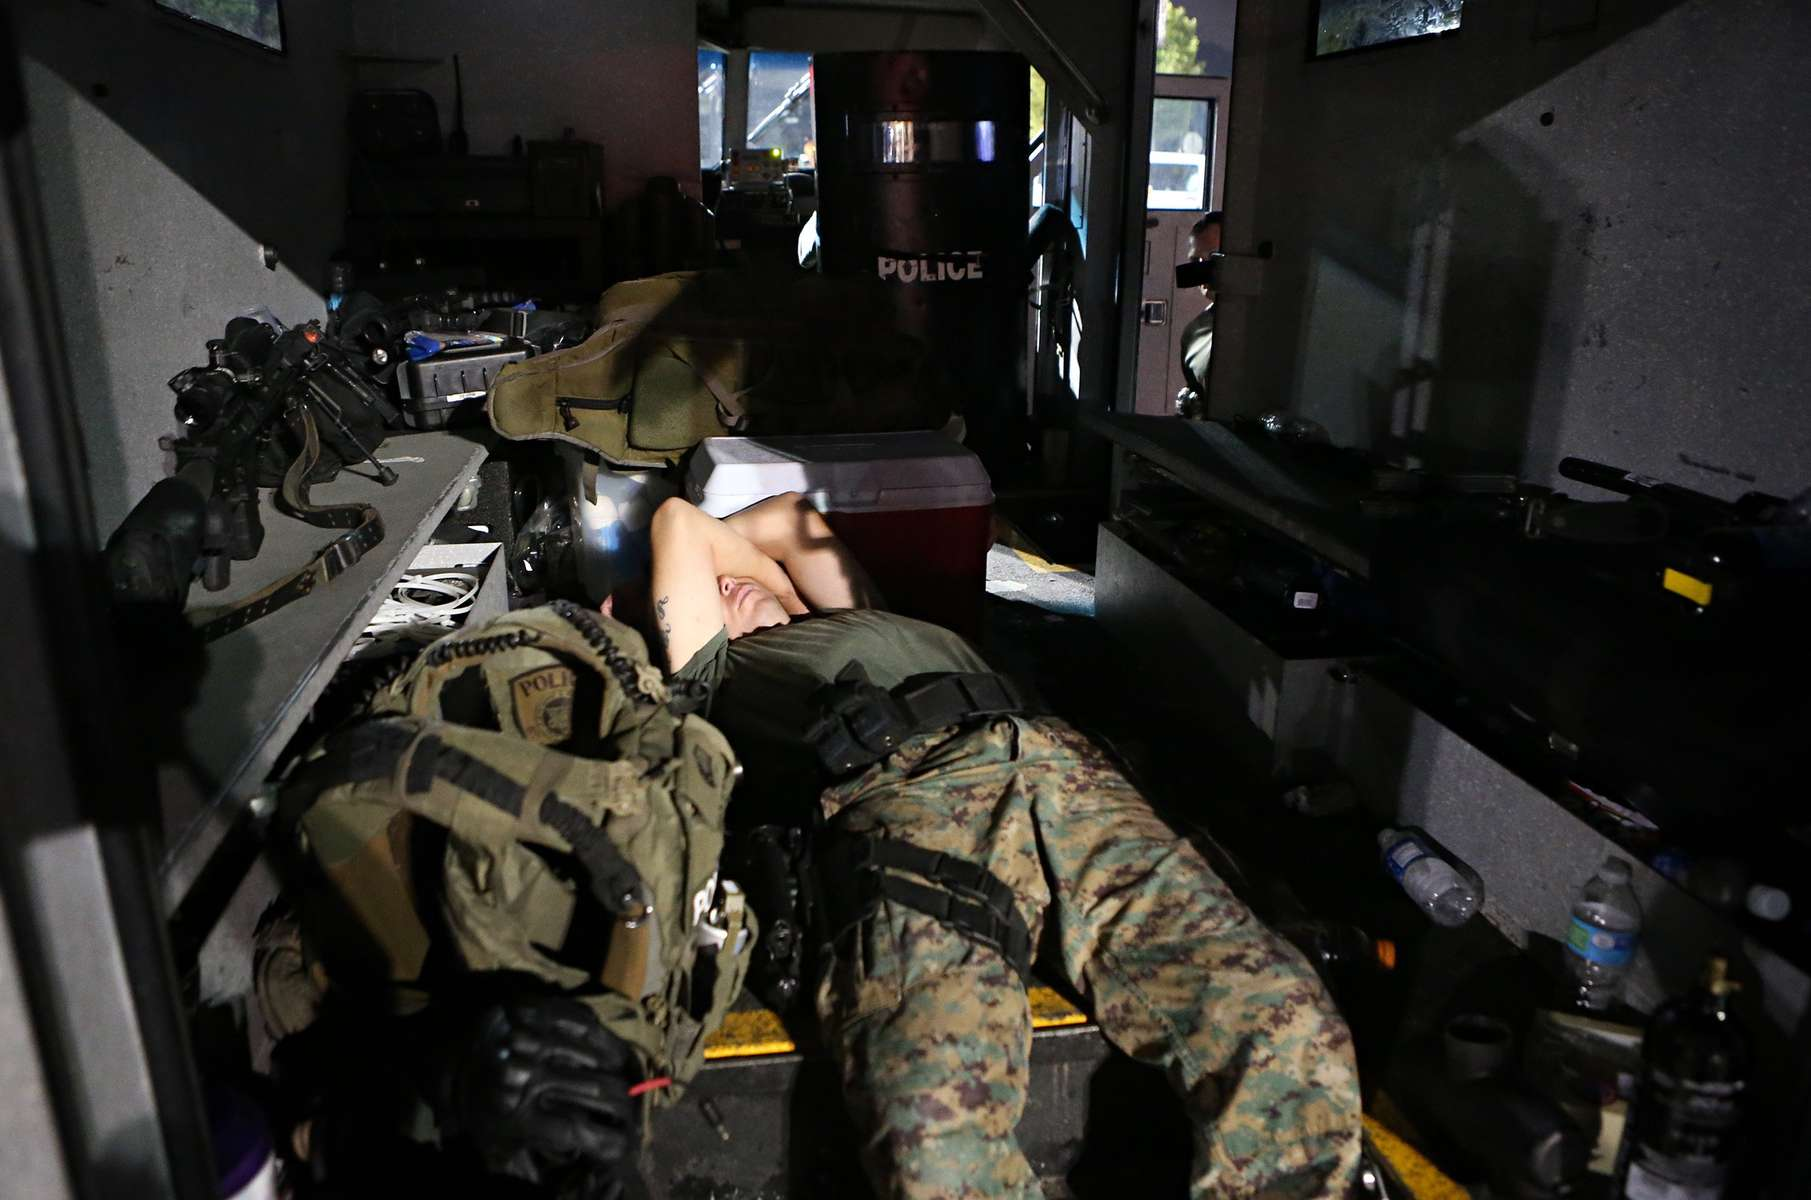 A member of the St. Louis County Police tactical team sleeps in the back of the team's armored truck after arriving back at the command post W. Florissant Avenue at about 2:49 A.M. on Tuesday, Aug. 19, 2014.